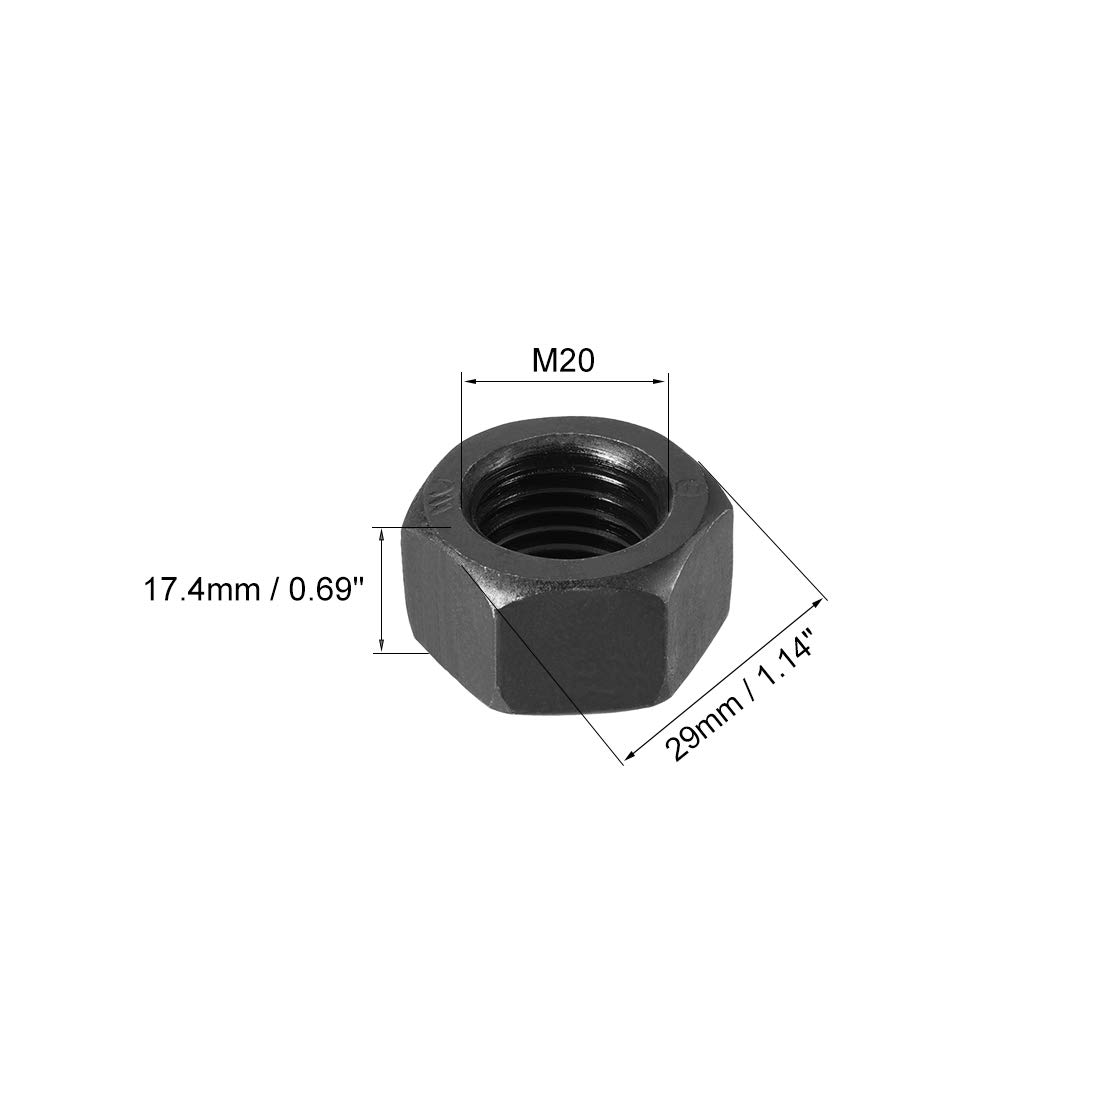 Pack of 50 uxcell Hex Nuts Carbon Steel M5x0.8mm Metric Coarse Thread Hexagon Nut Silver Tone